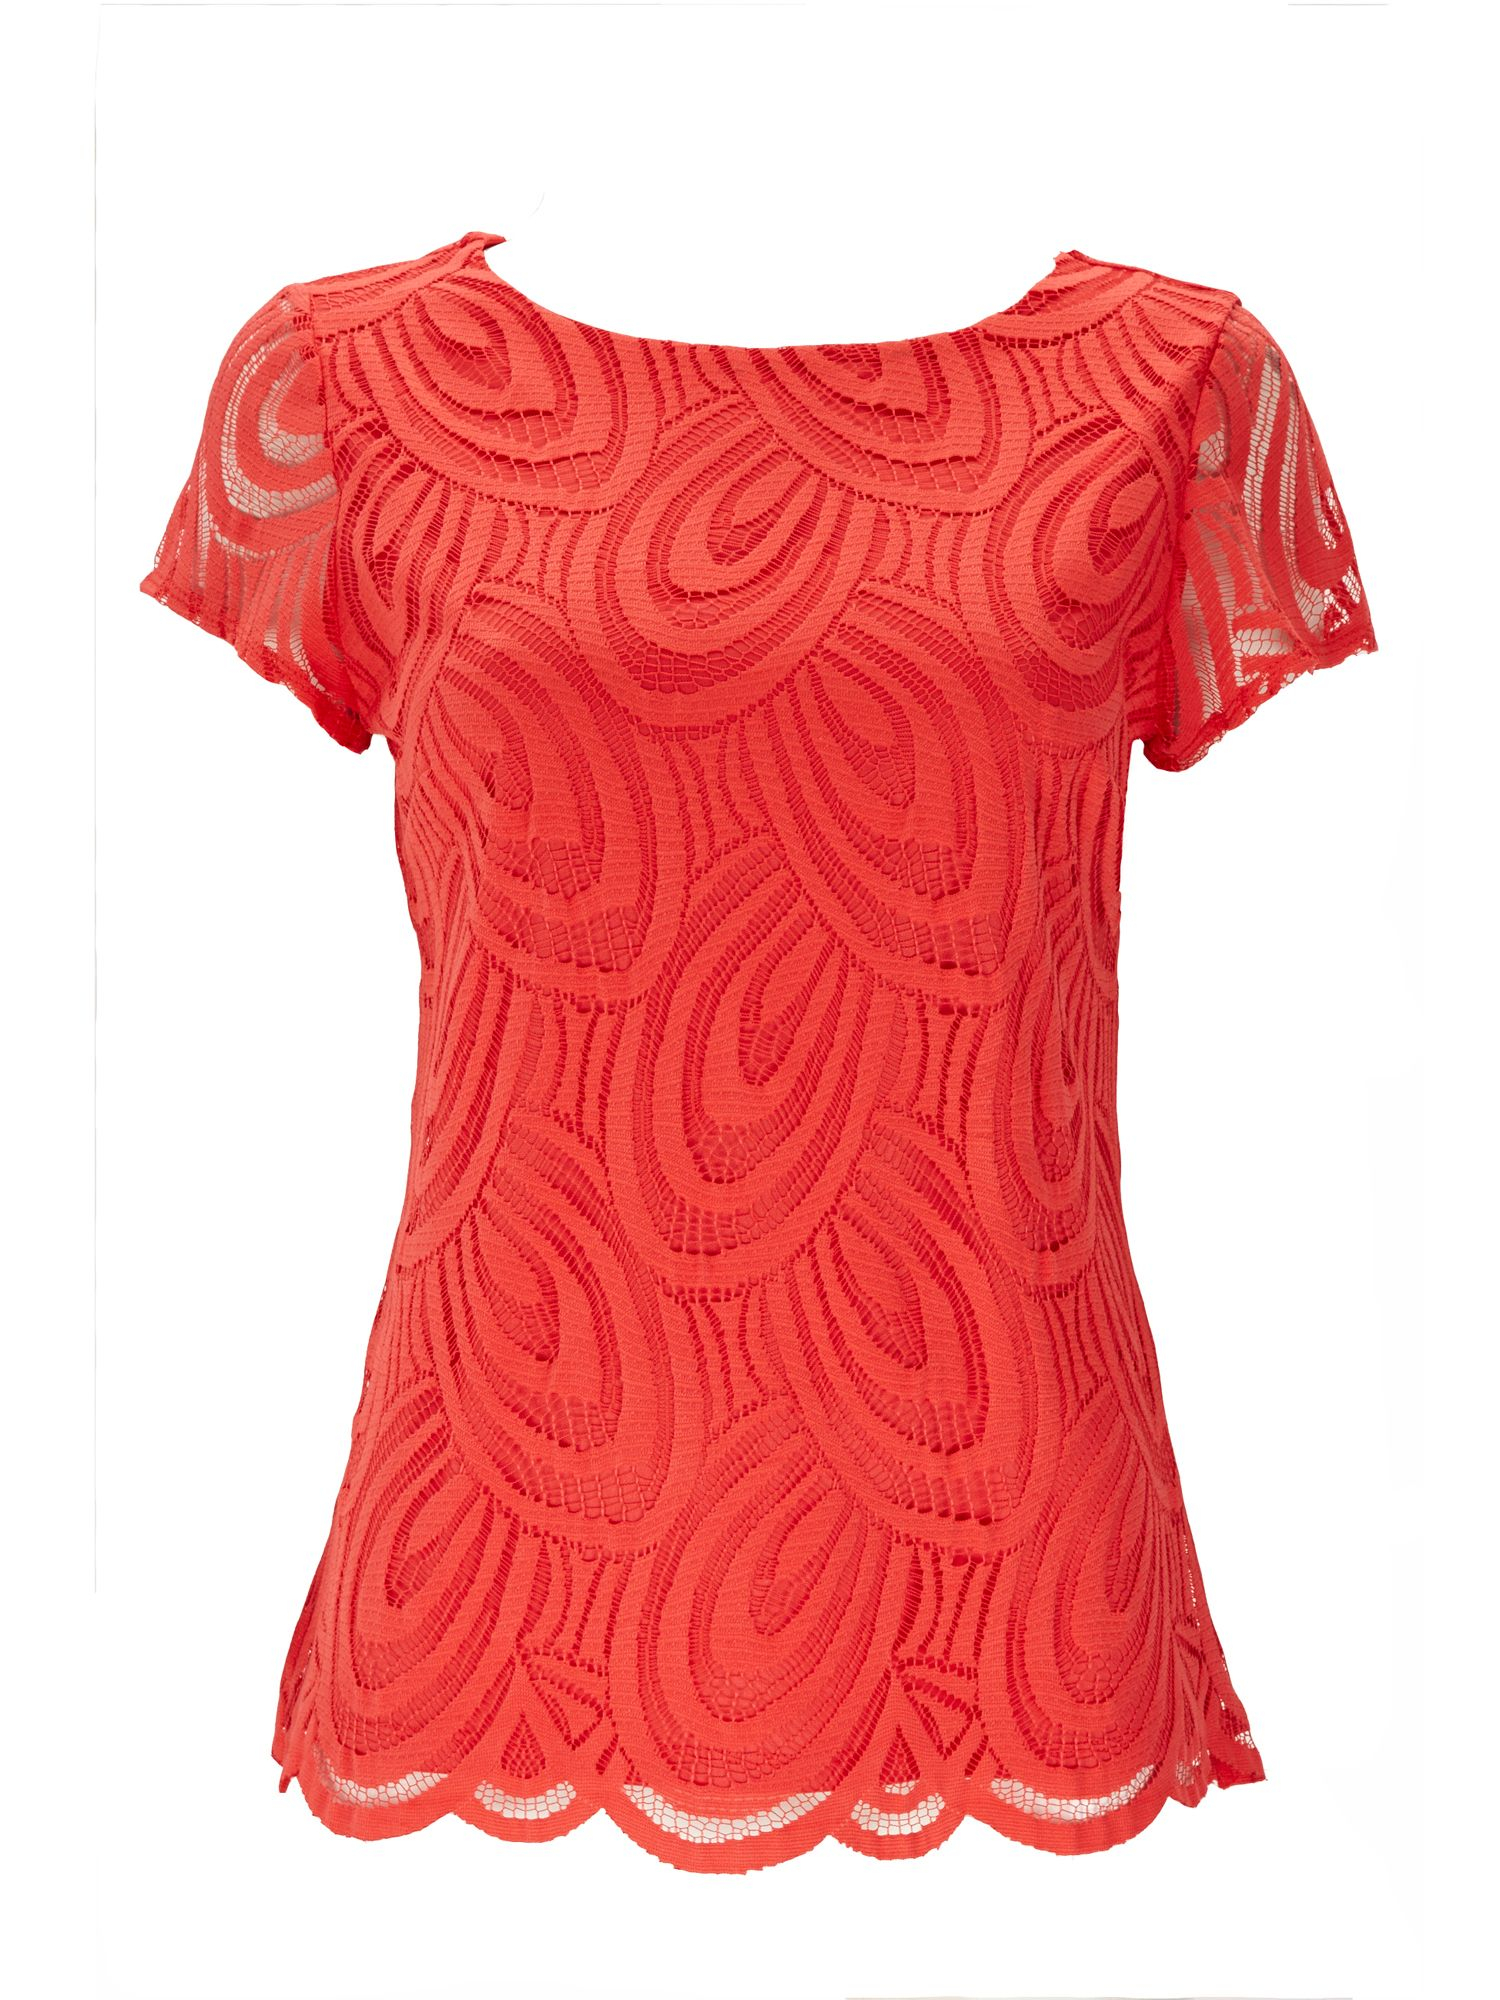 Wallis Coral Lace Top in Red (Coral) | Lyst